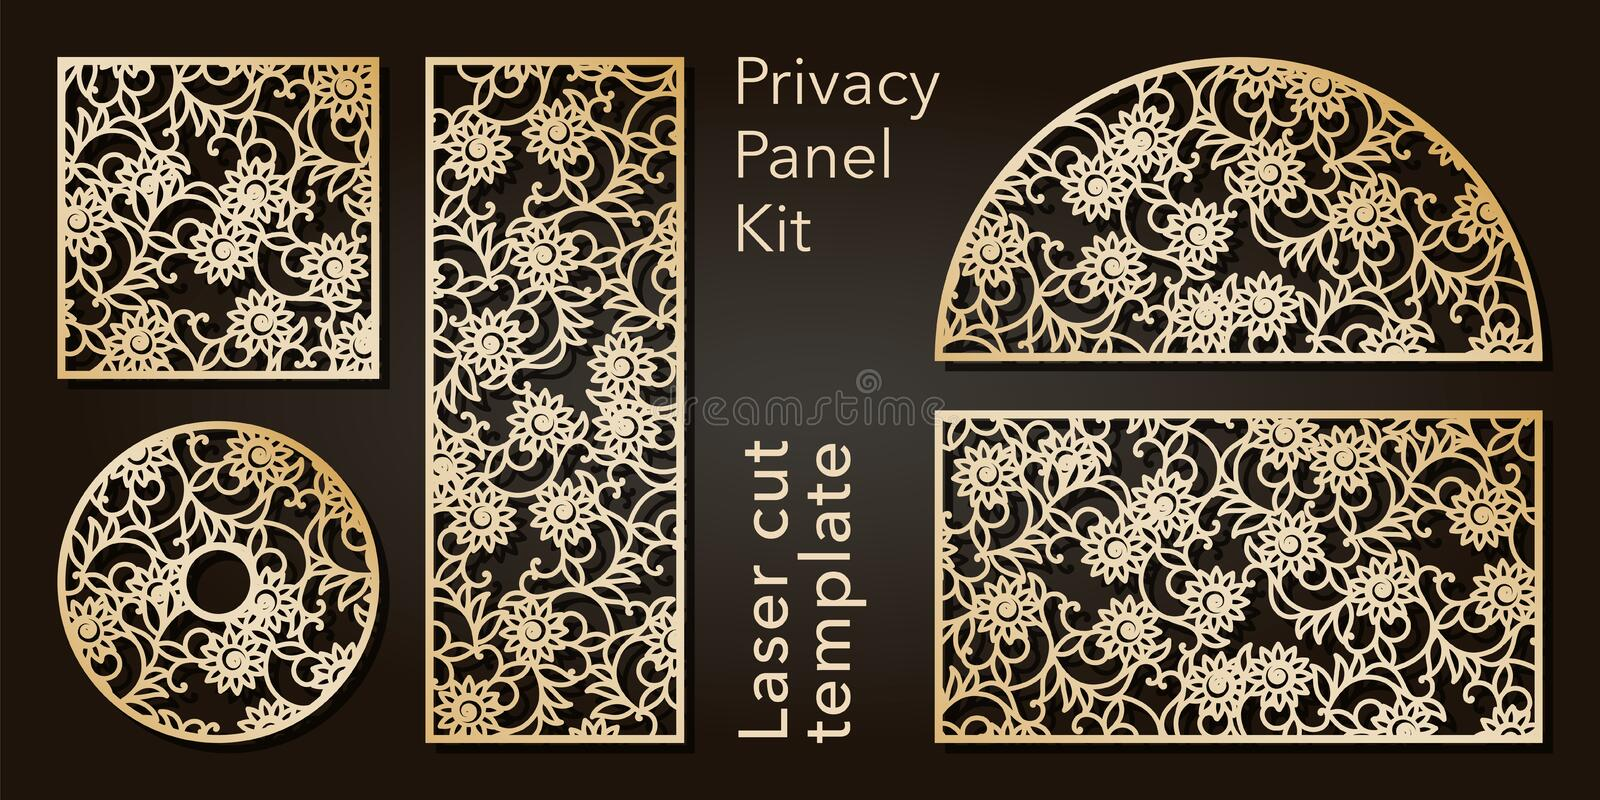 Set of openwork panels for laser cutting. Carved decorative element for interior design, room partition, screen, privacy. Panel stock illustration